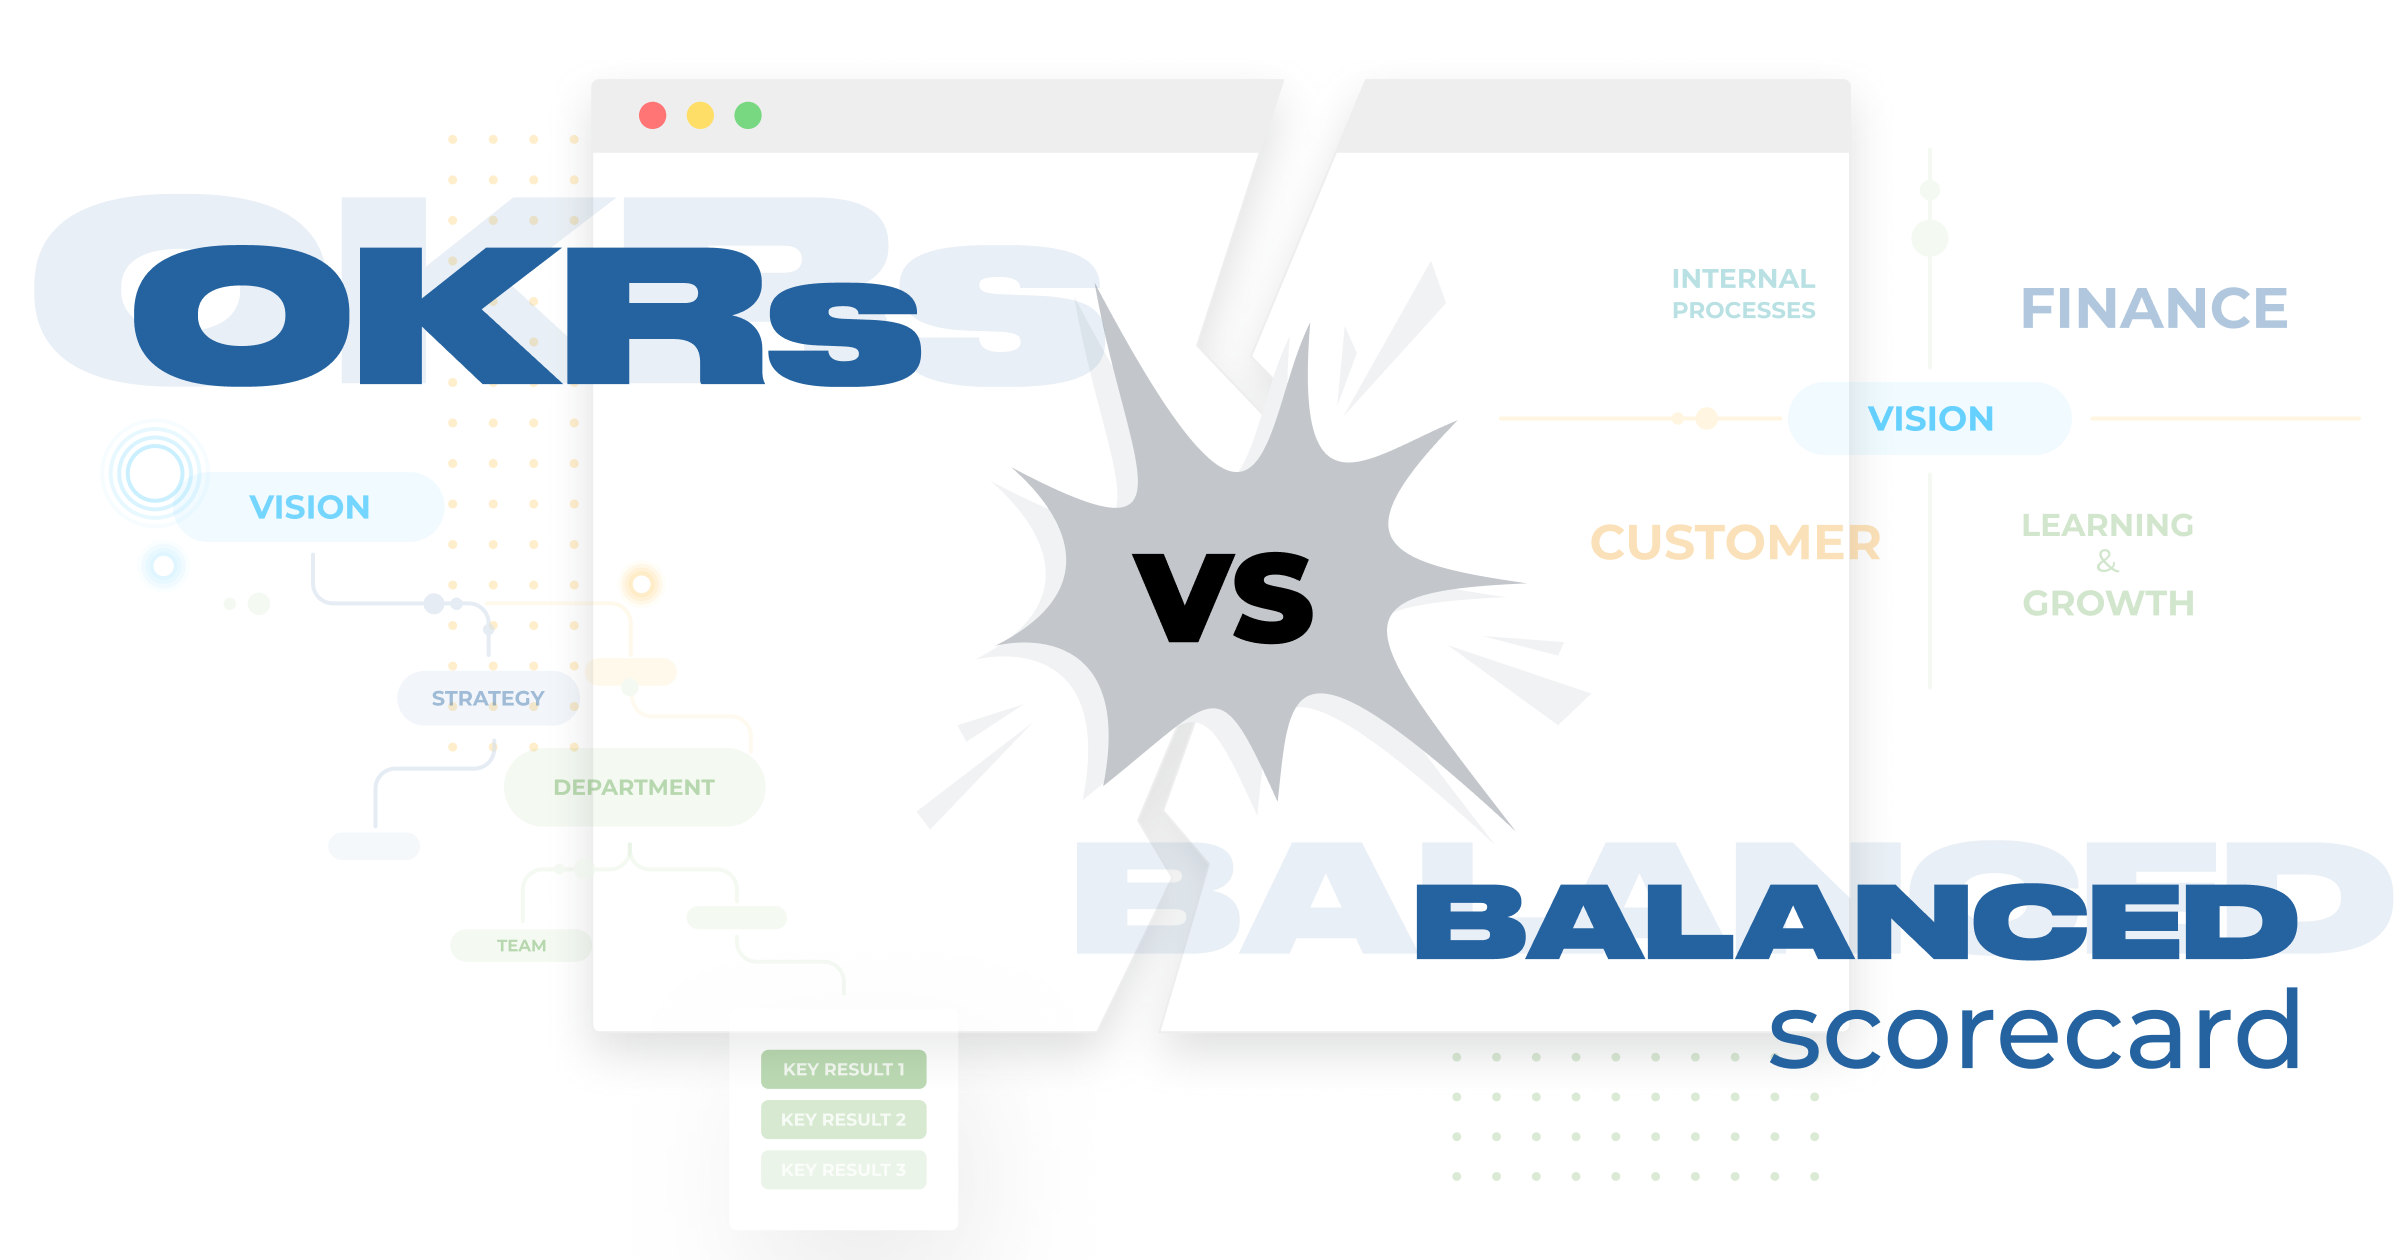 OKRs vs Balanced Scorecard: What's the Difference